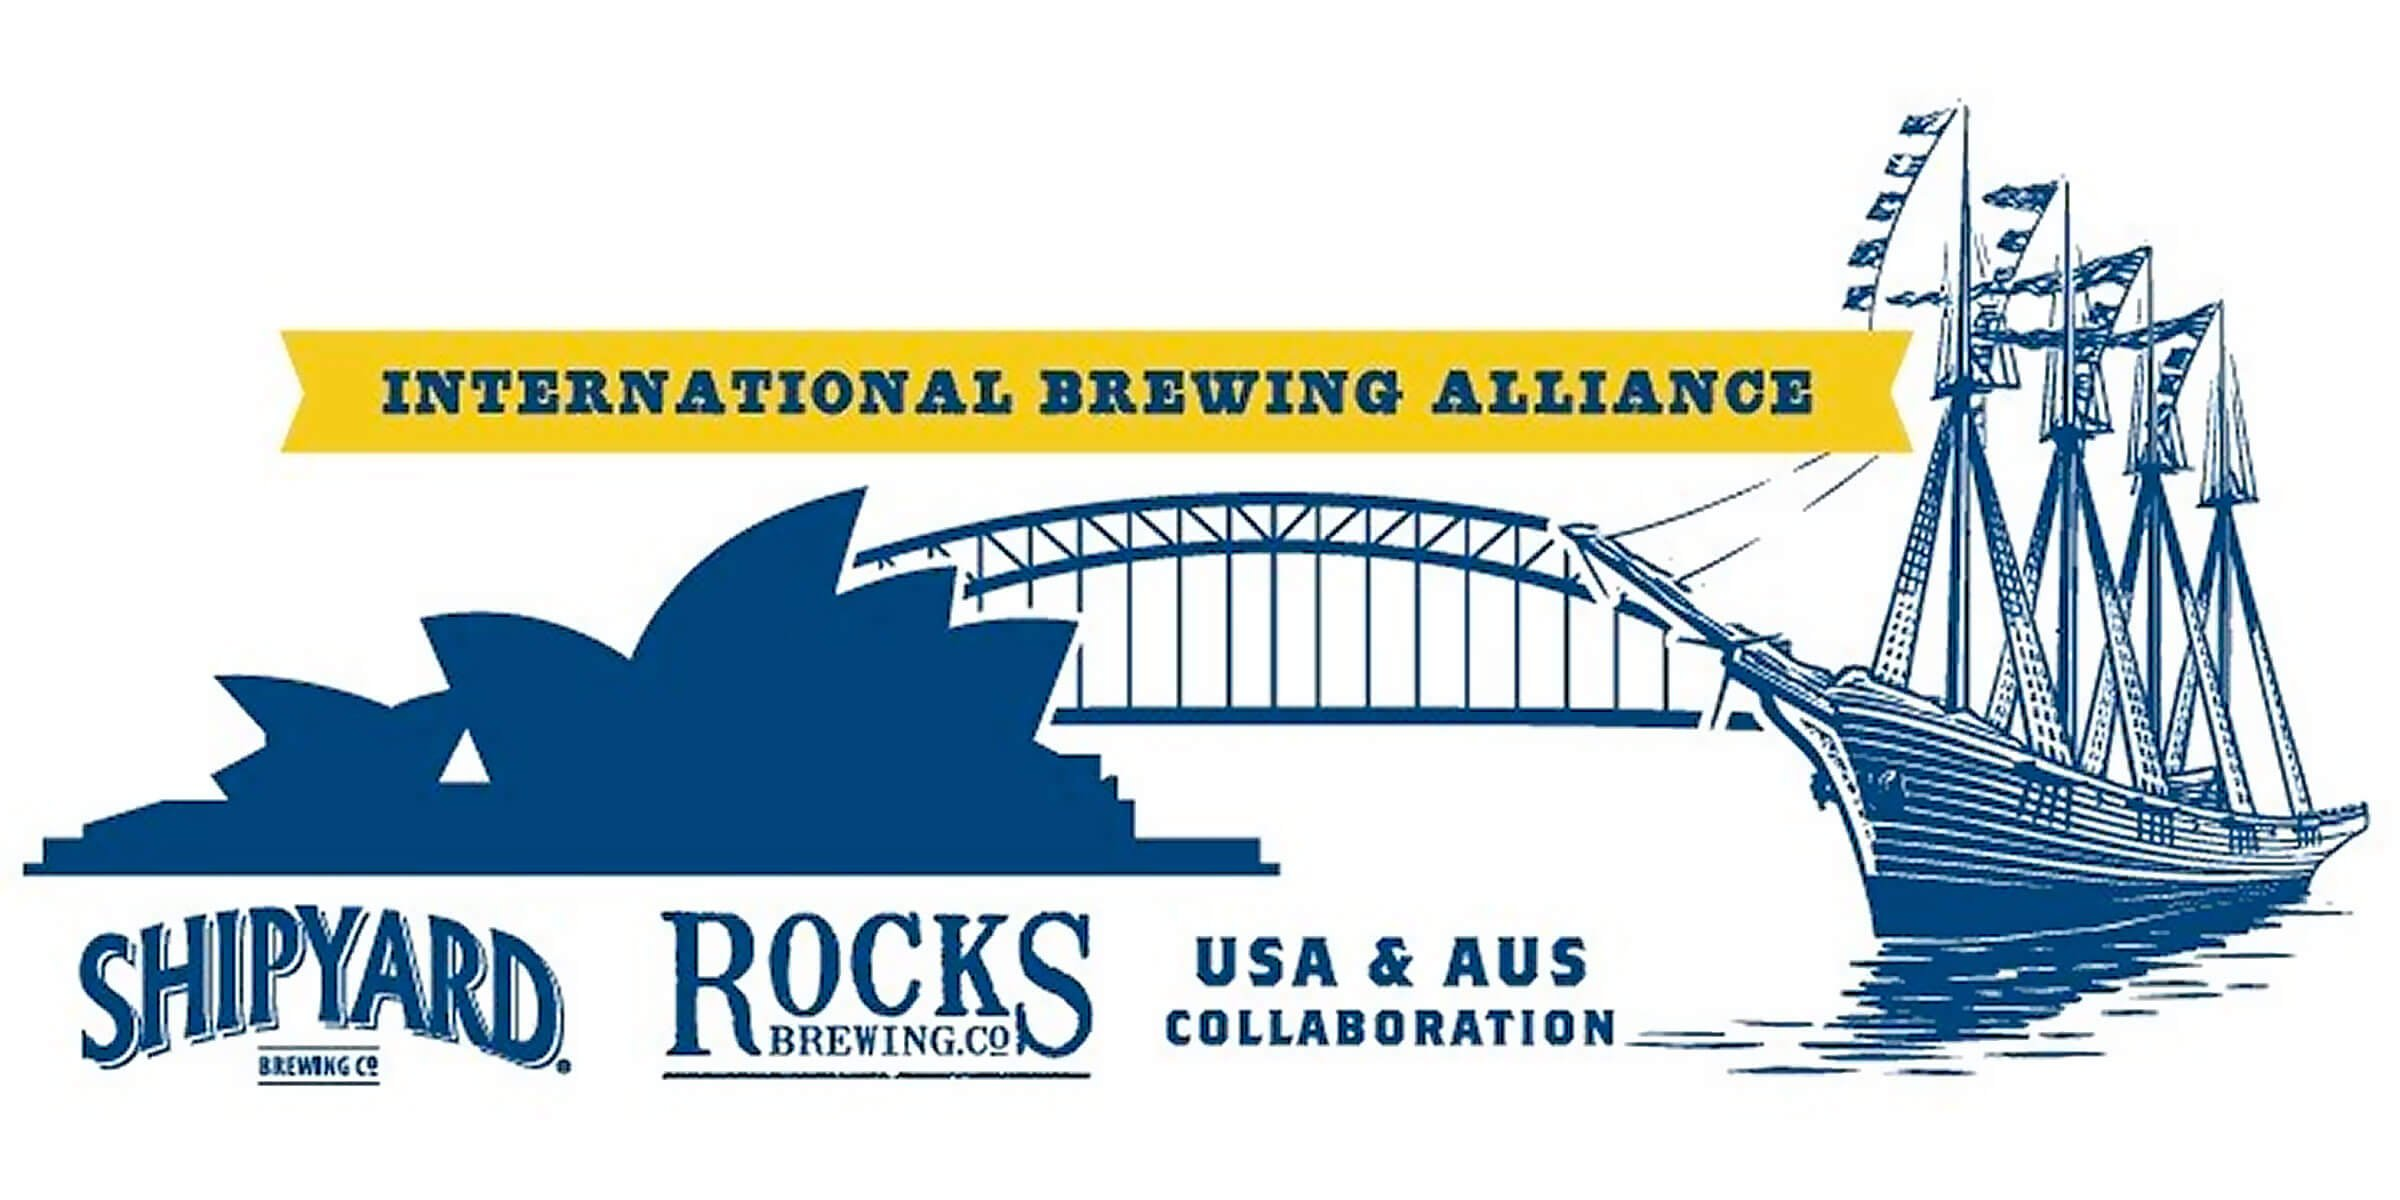 Shipyard Brewing Co., Maine's largest craft brewery, will exchange signature brews with their new partners in Australia beginning with Rocks Brewing Co.